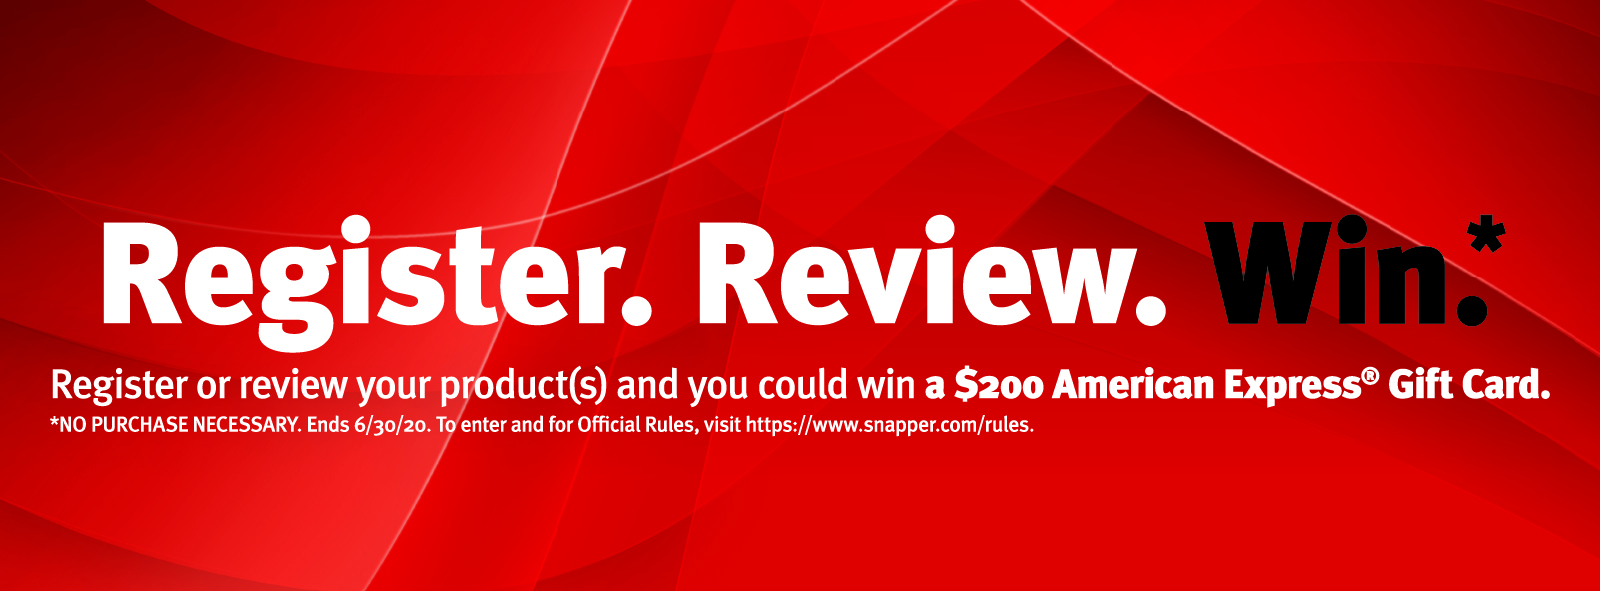 Enter into the Register. Review. Win. Sweepstakes